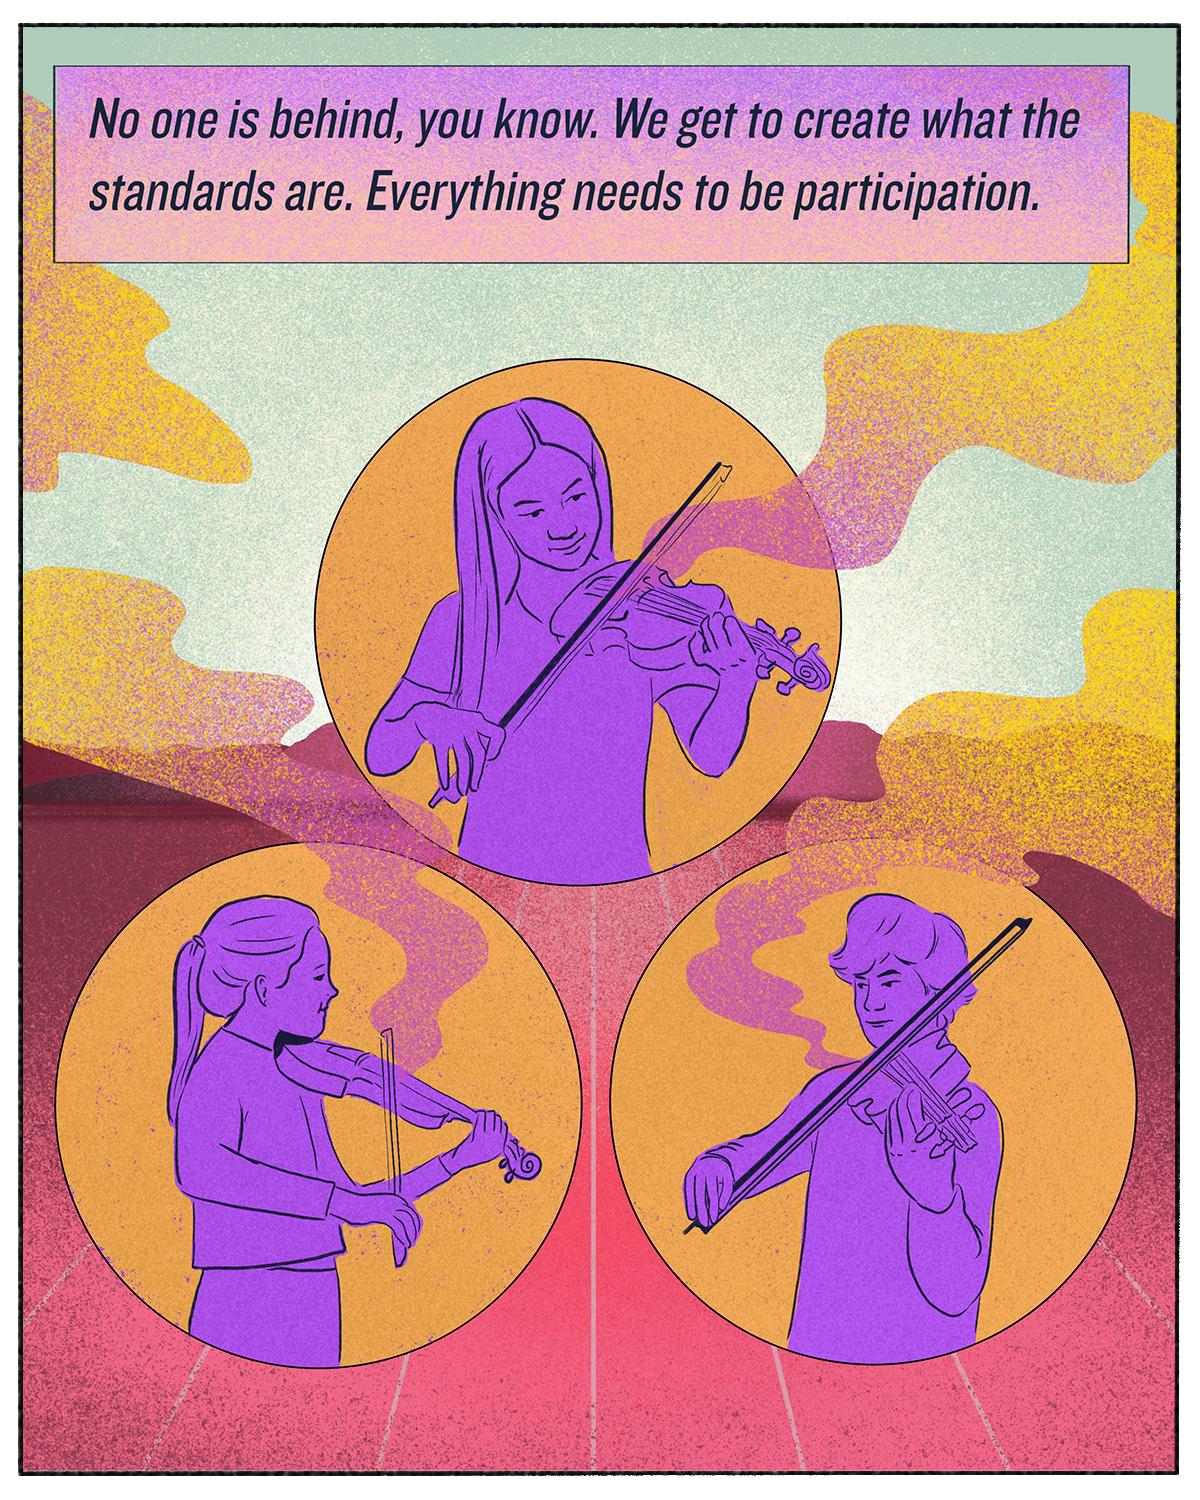 """""""No one is behind, you know. We get to create what the standards are. Everything needs to be participation."""""""